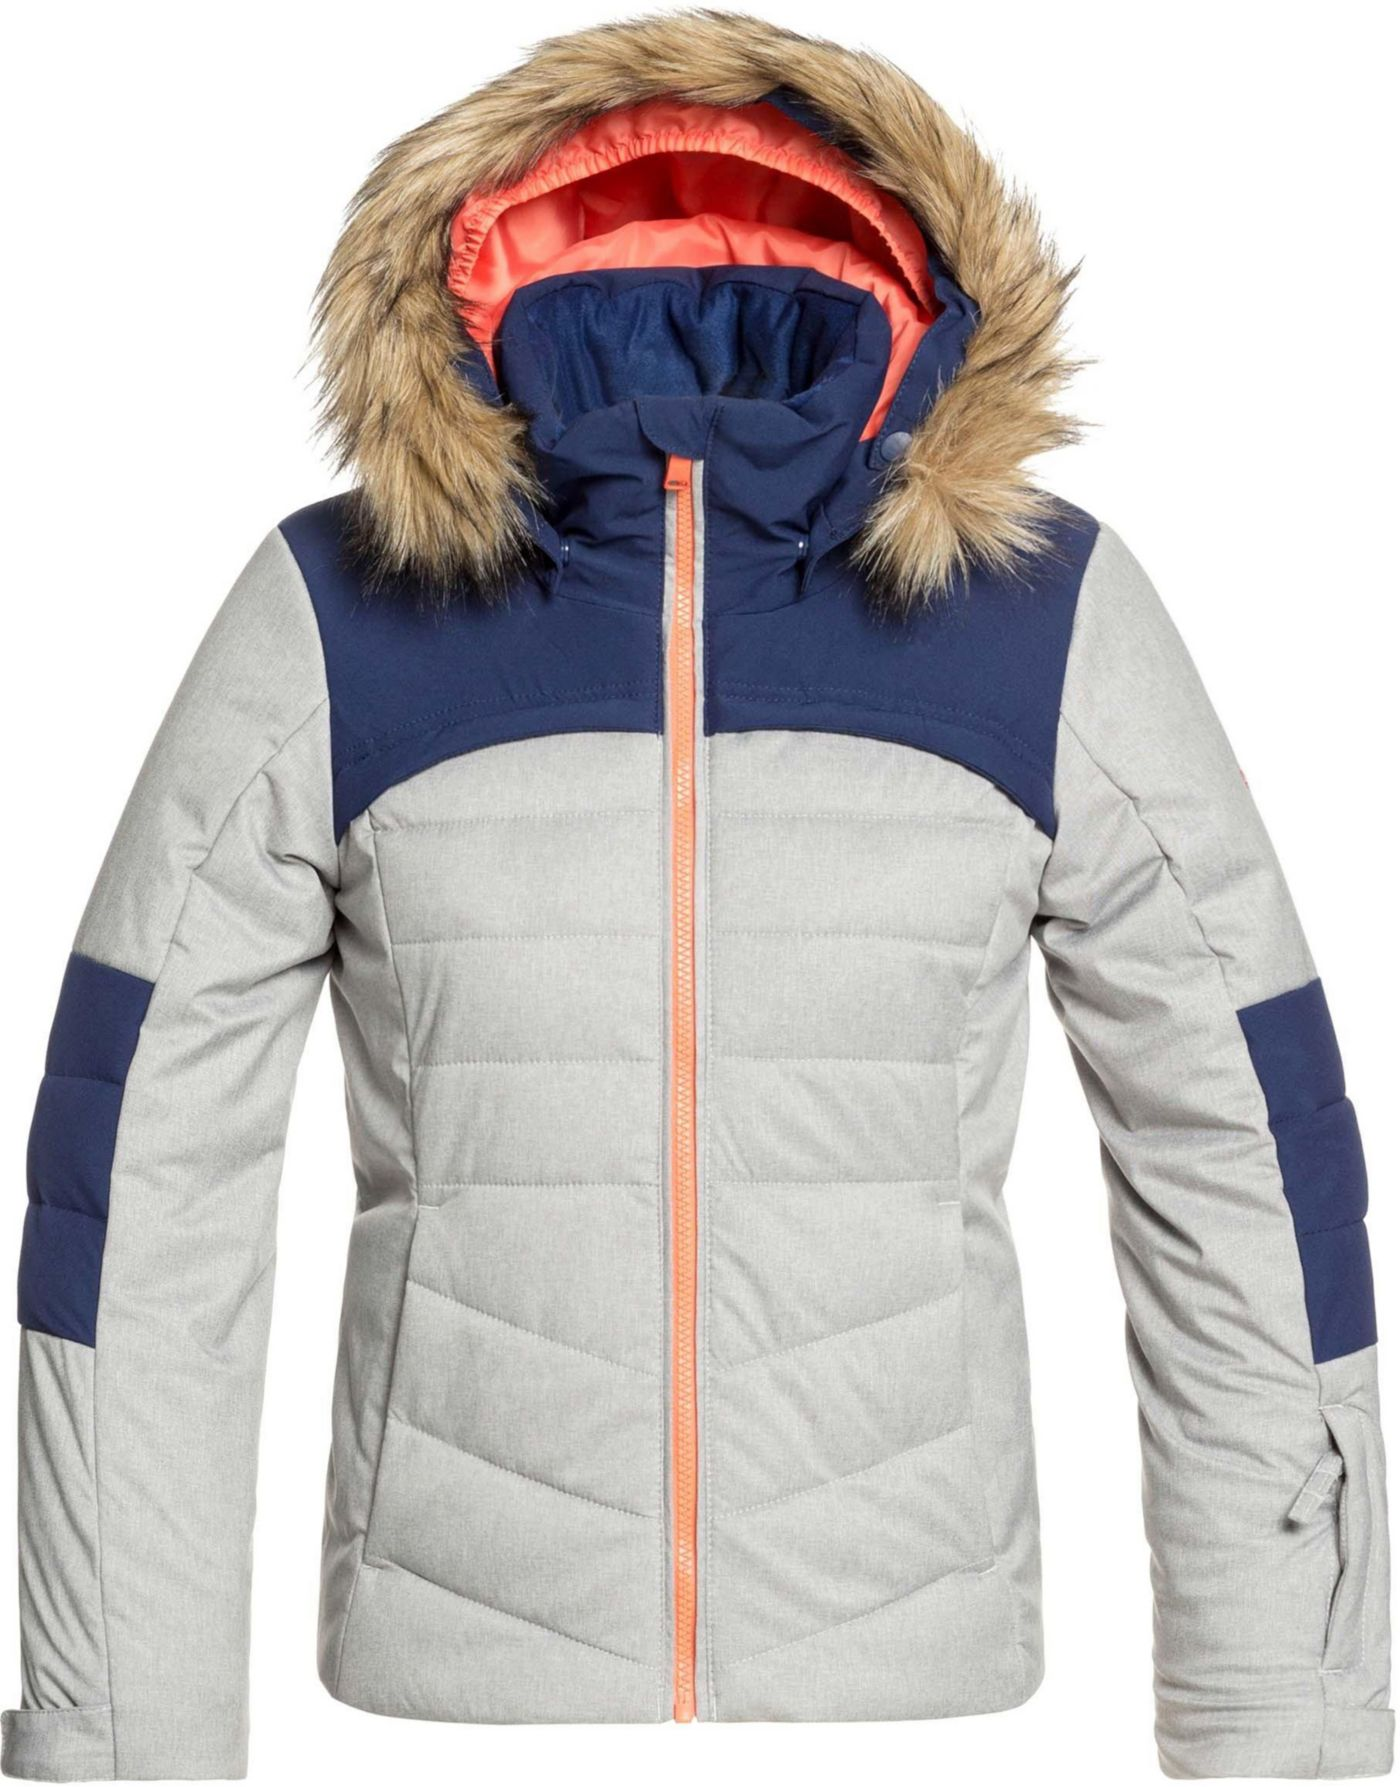 Roxy Girls' Bamba Snow Jacket